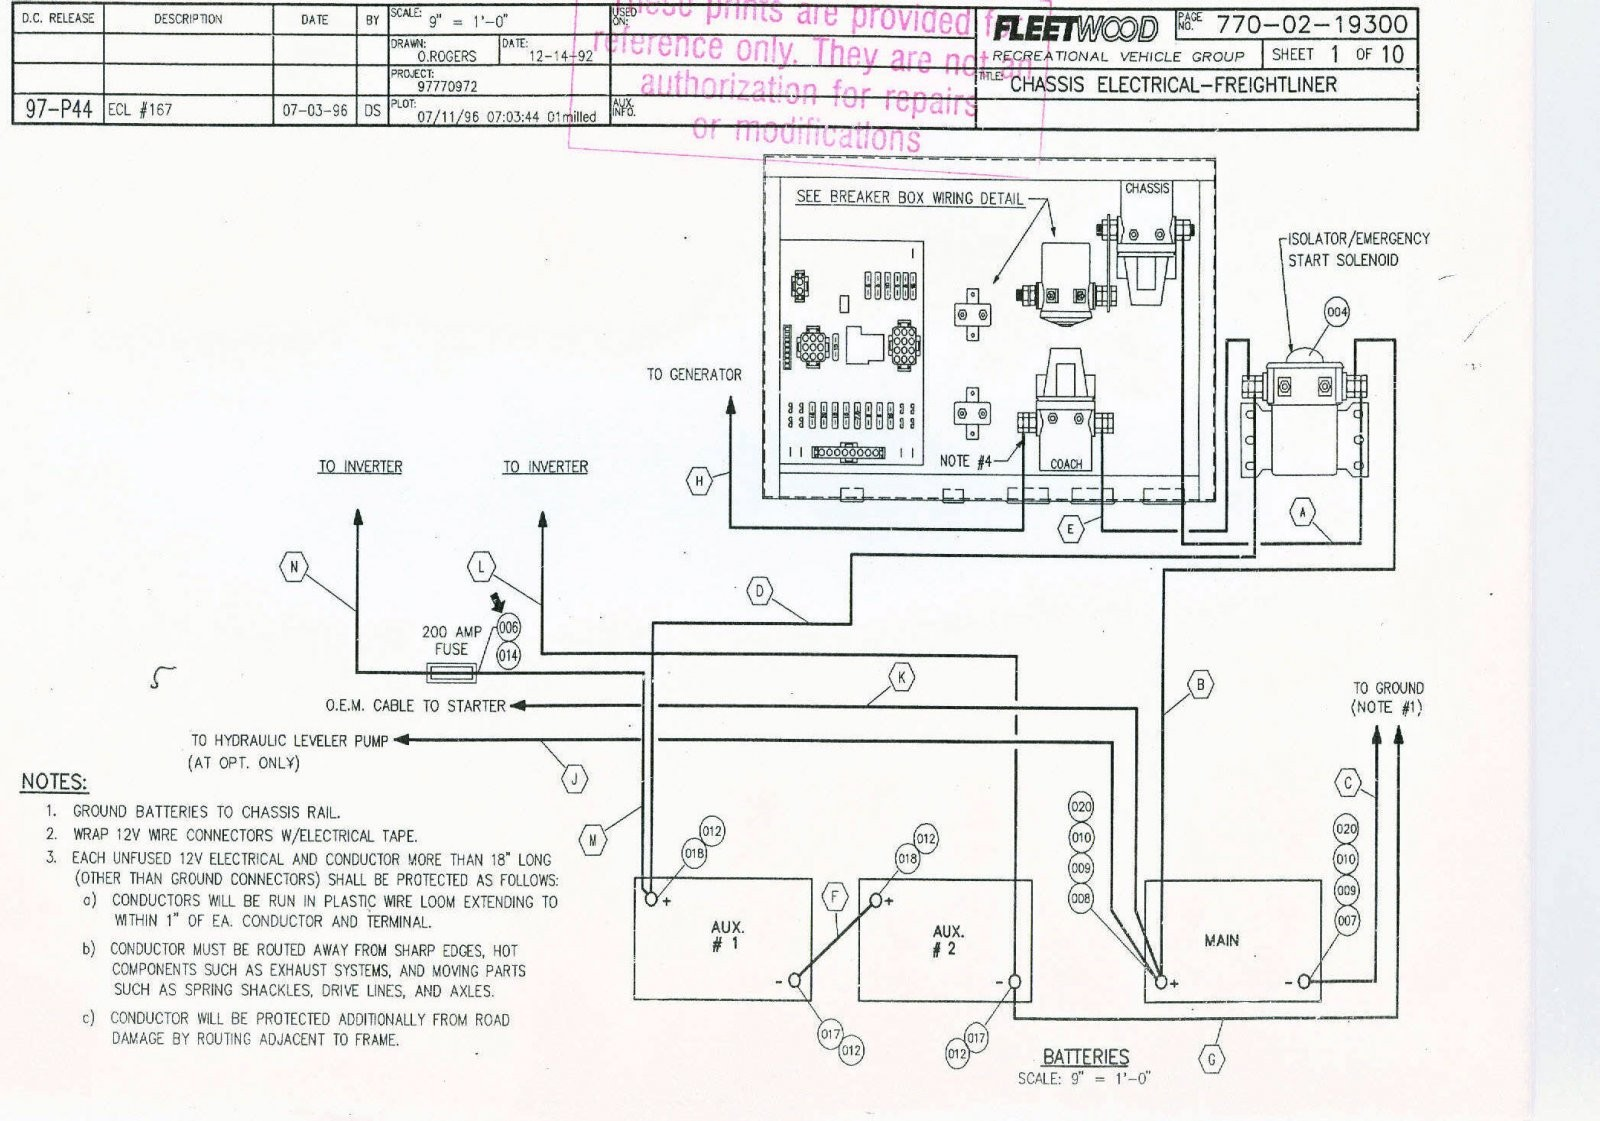 1990 Fleetwood Motorhome Wiring Diagram Images Gallery